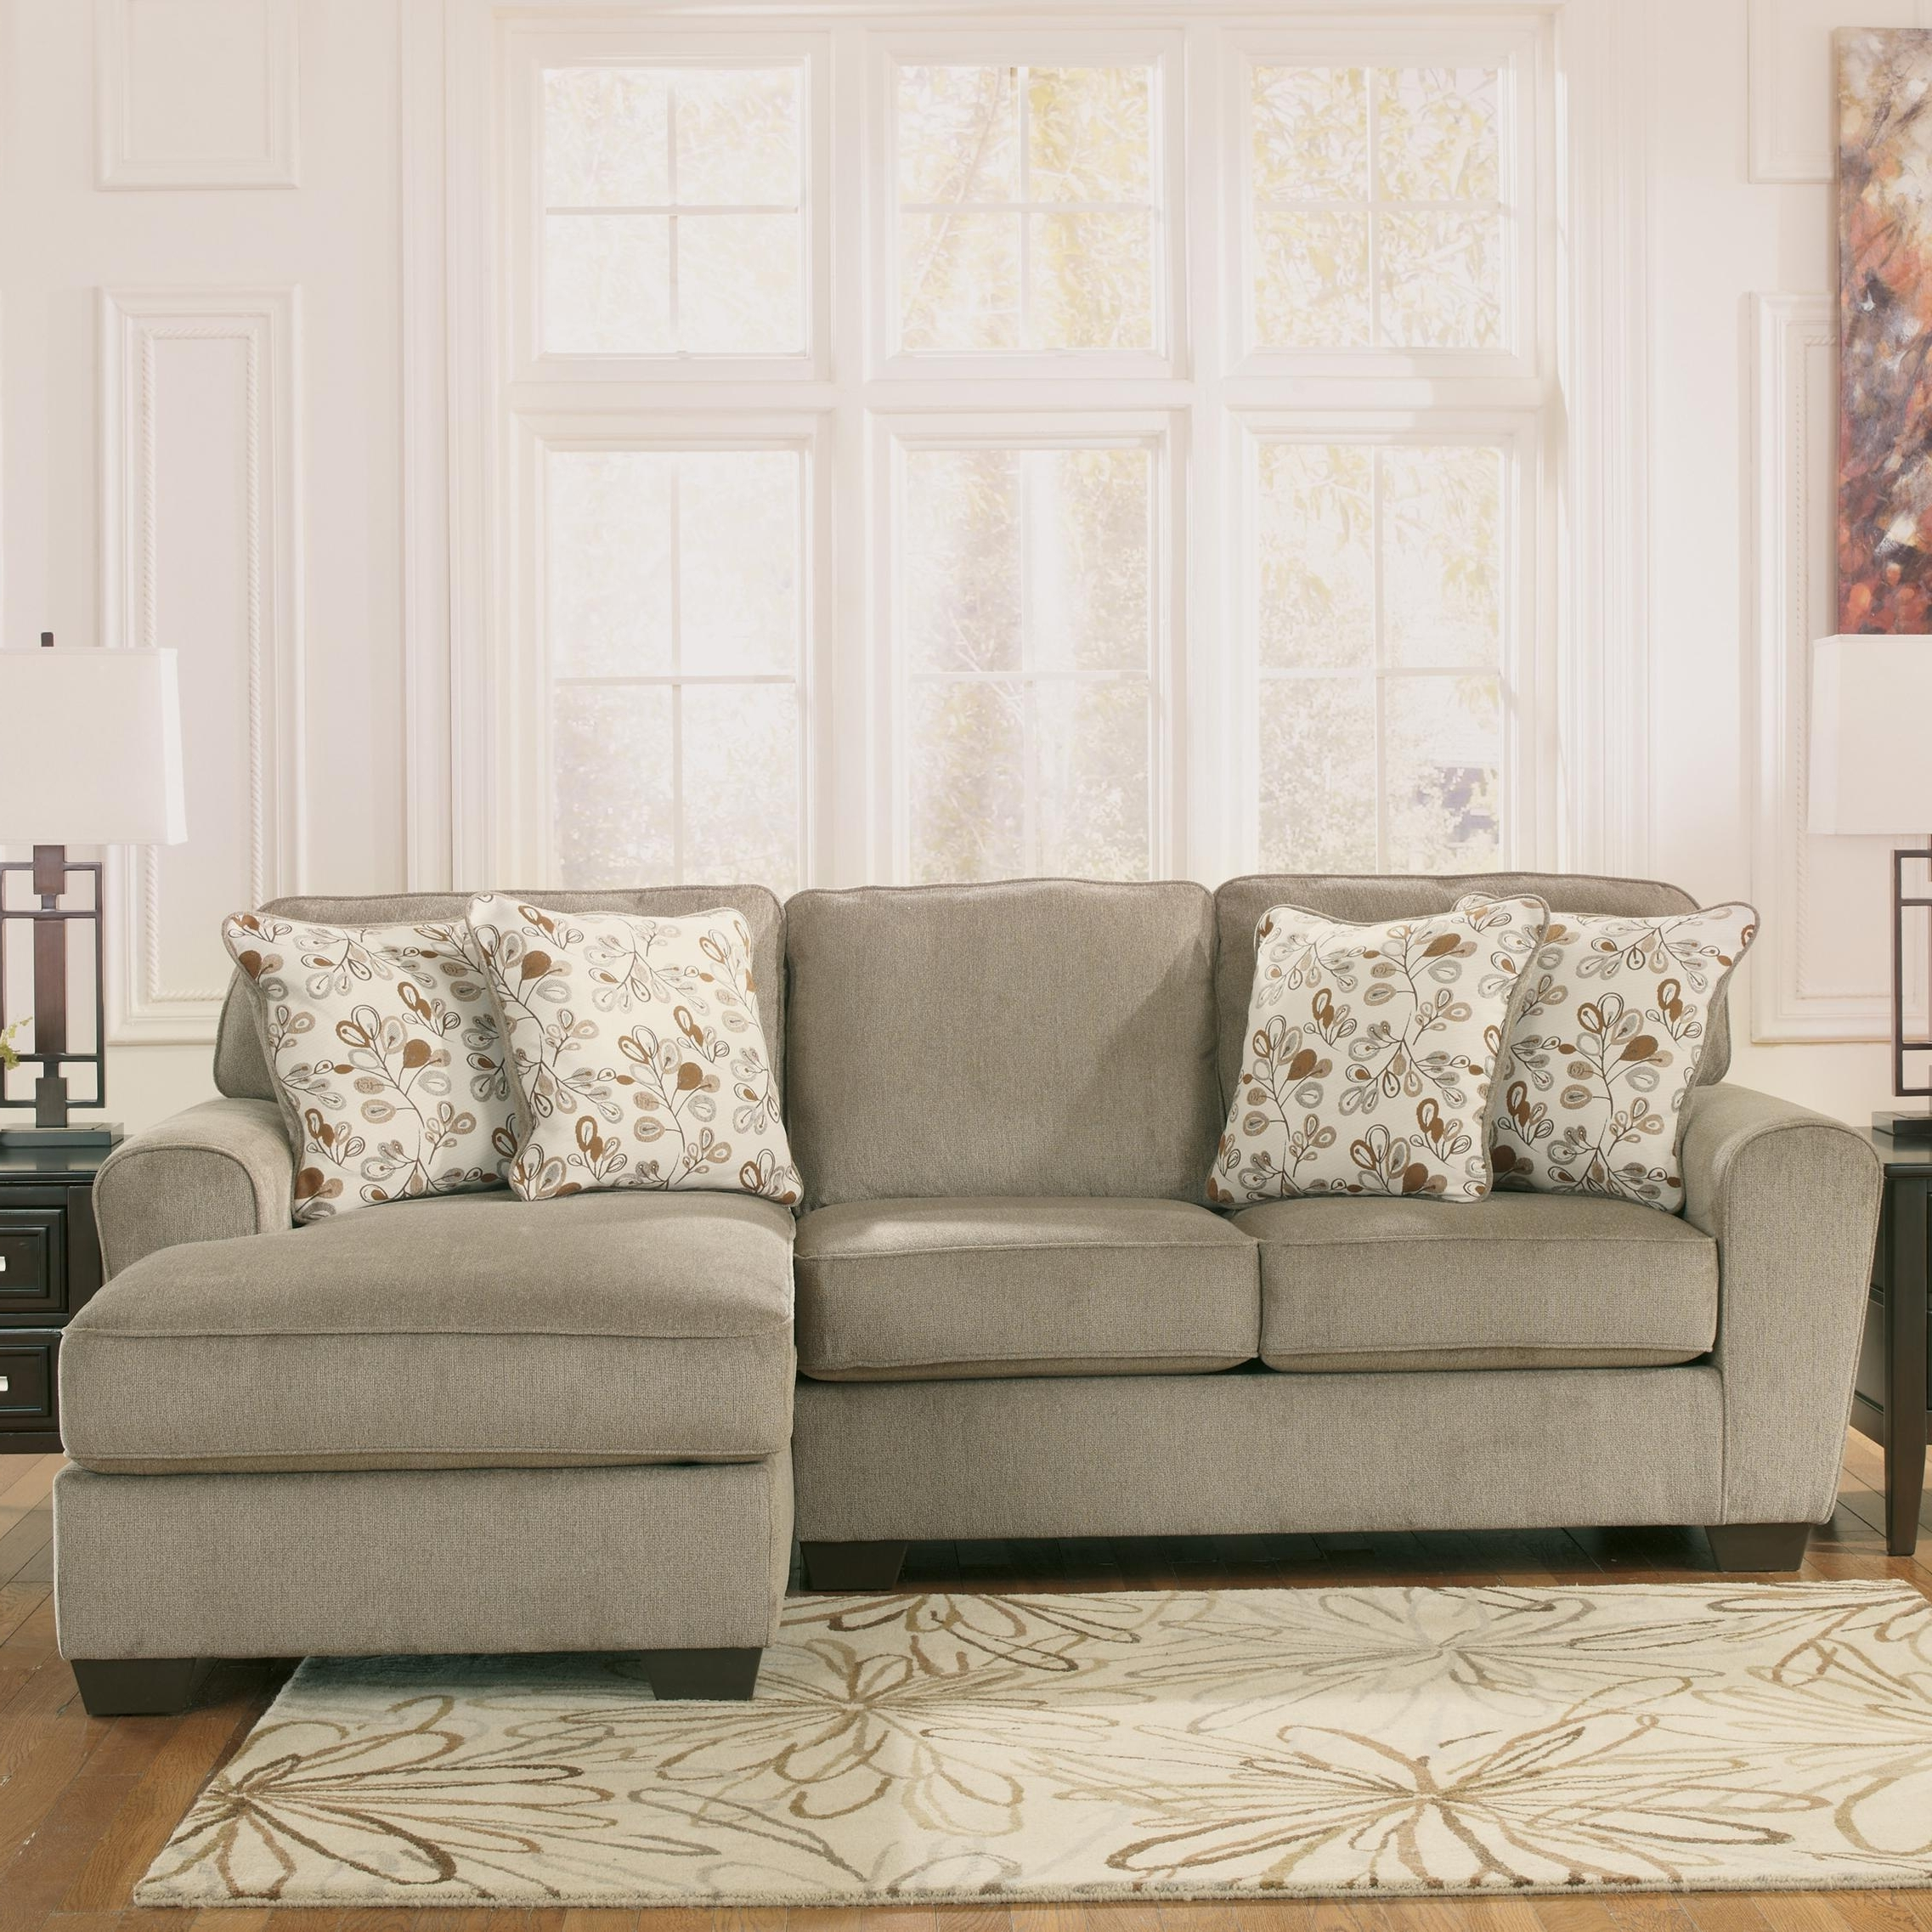 Ashley Furniture Sectional Sofas – Mforum Intended For Most Current 10x8 Sectional Sofas (View 14 of 20)